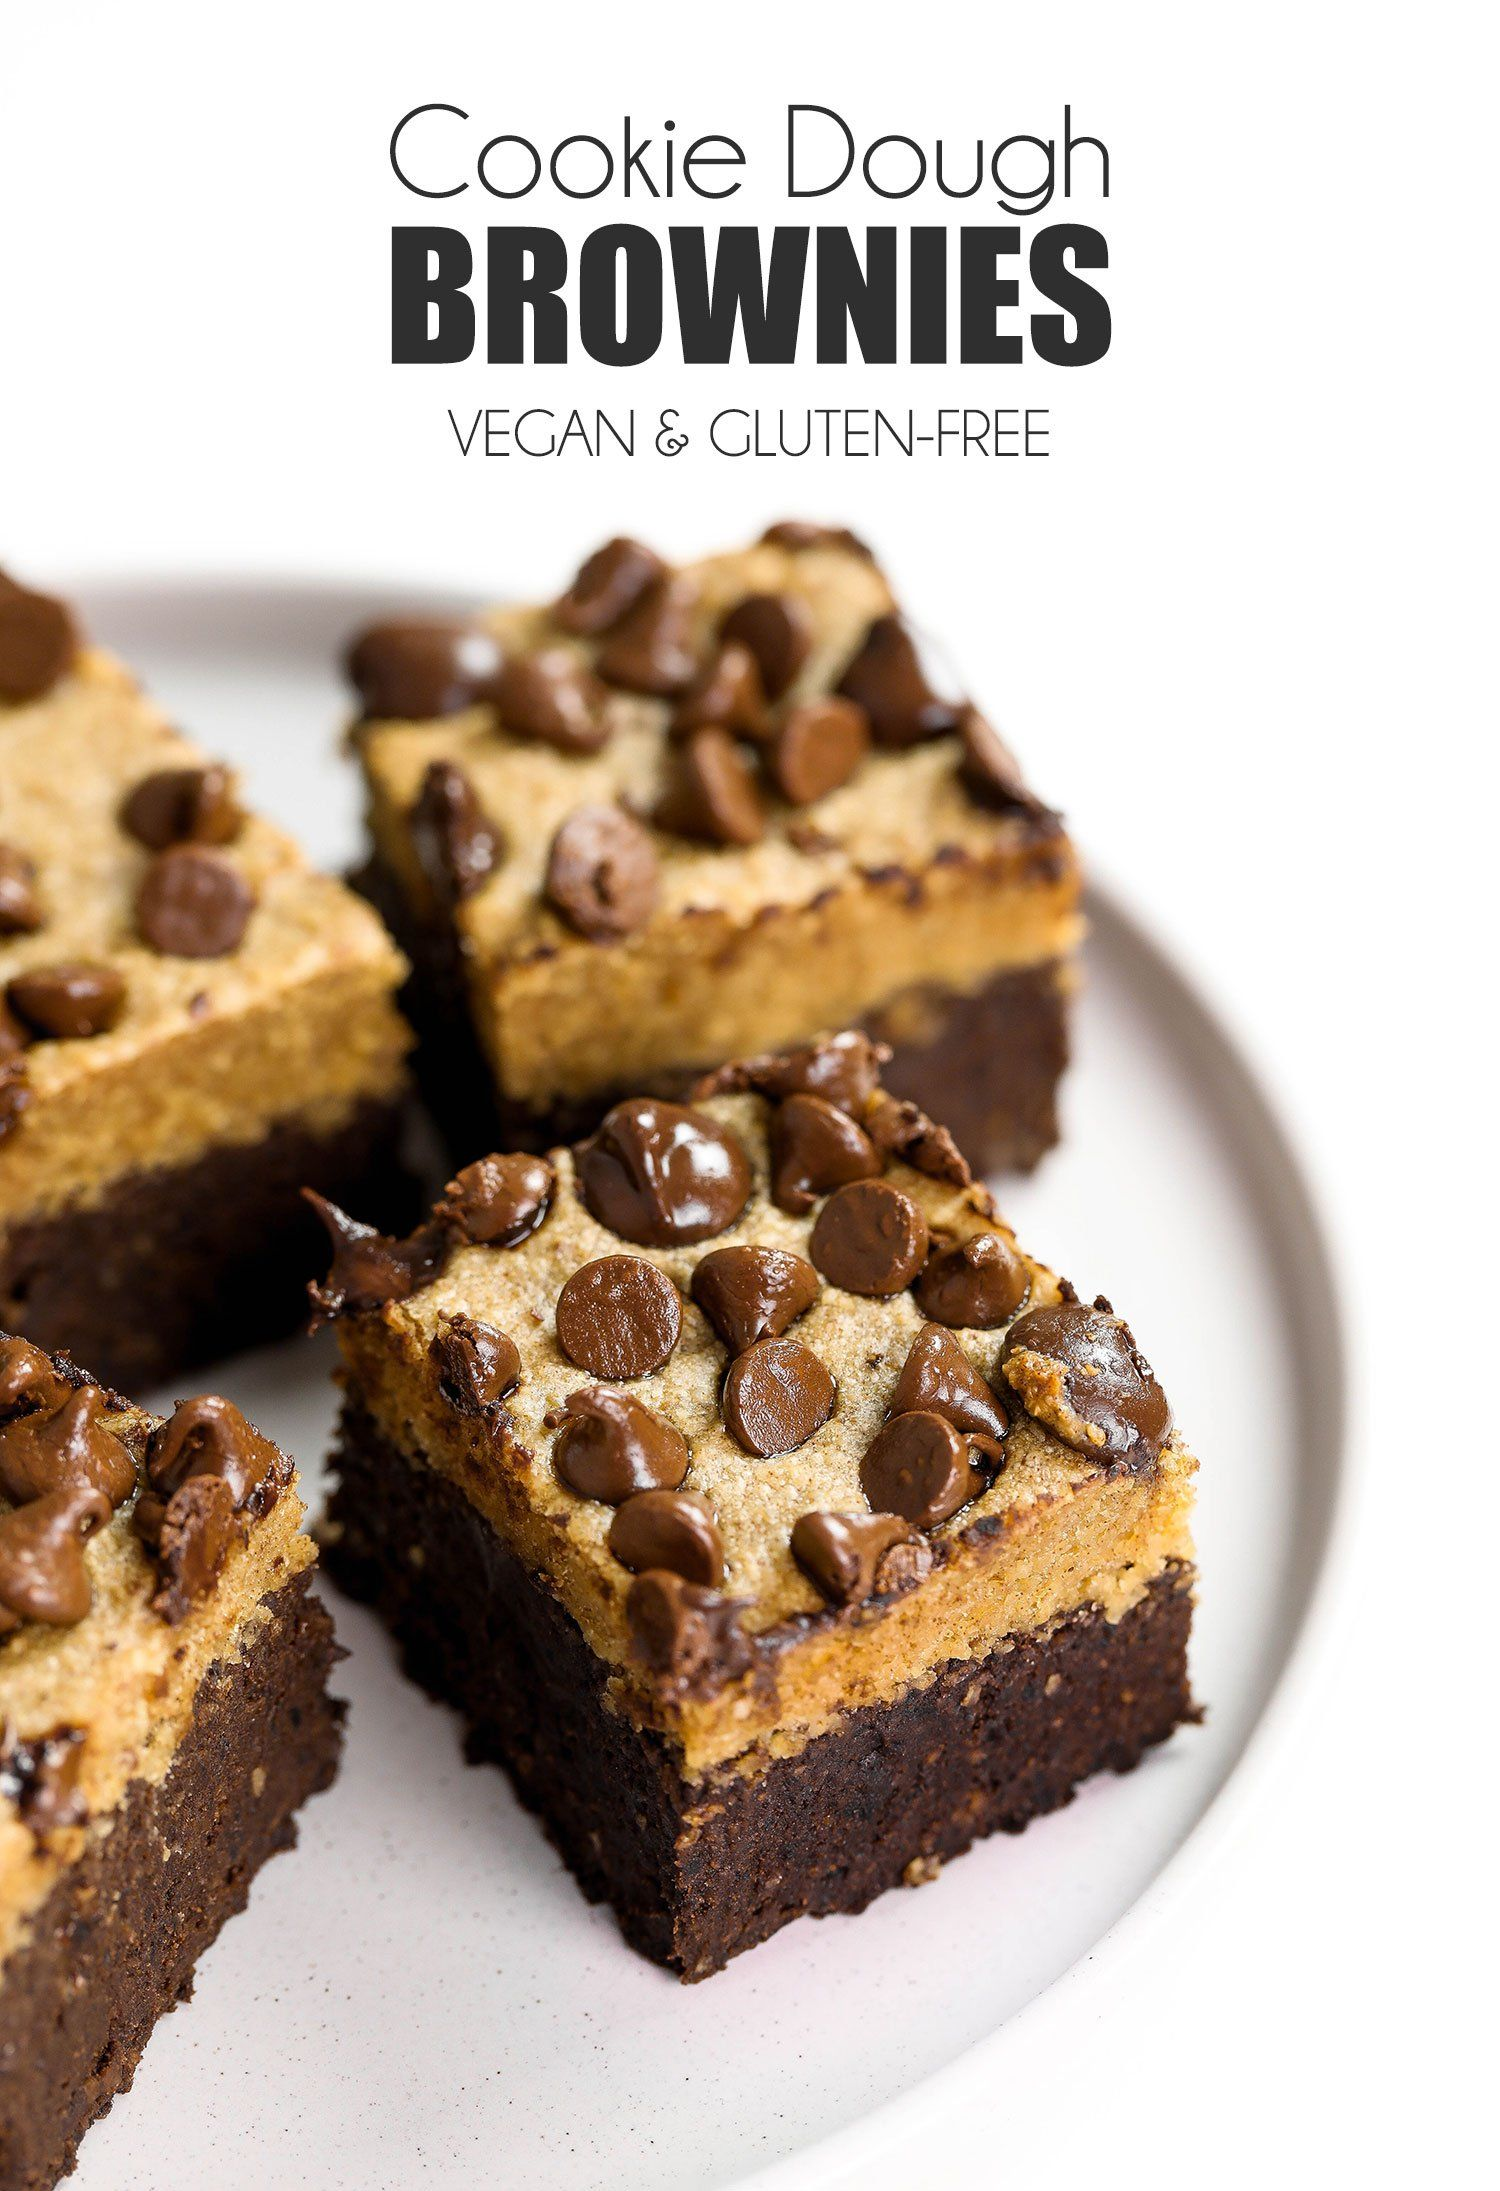 Cookie Dough Brownies Vegan, Gluten-free & Sweetened With Dates #healthycookiedough